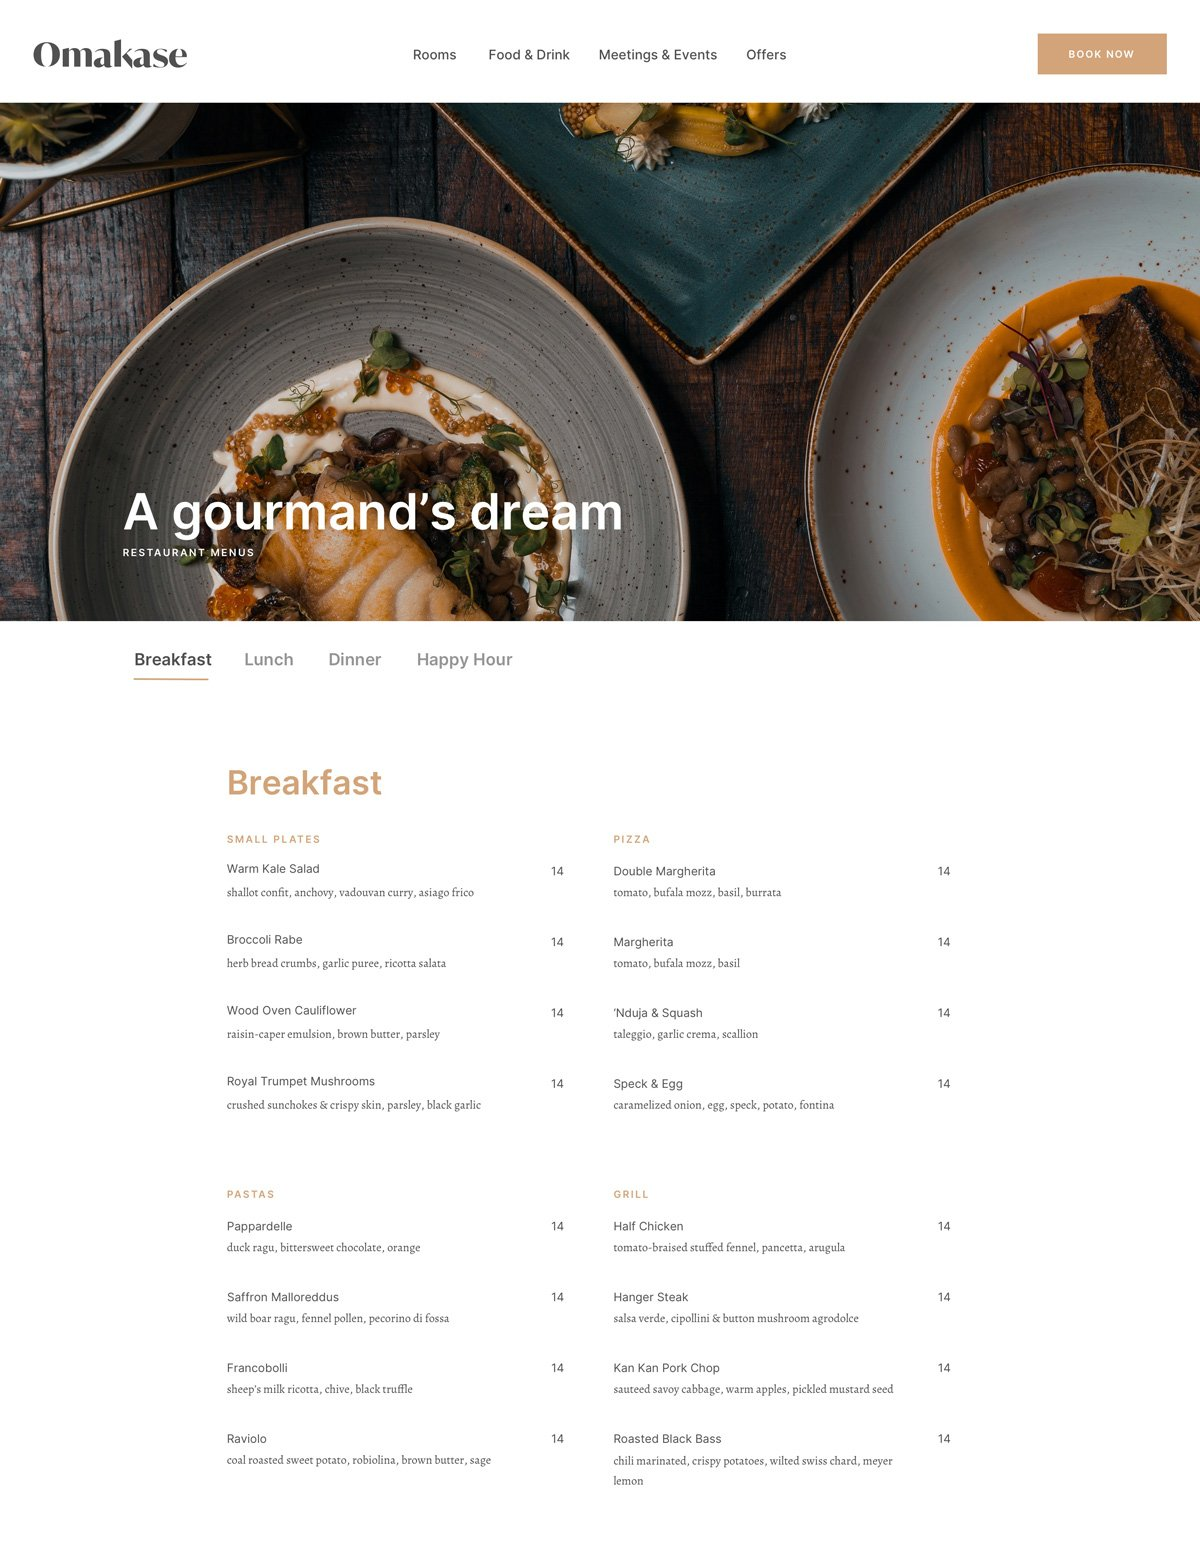 Omakase restaurant page screenshot